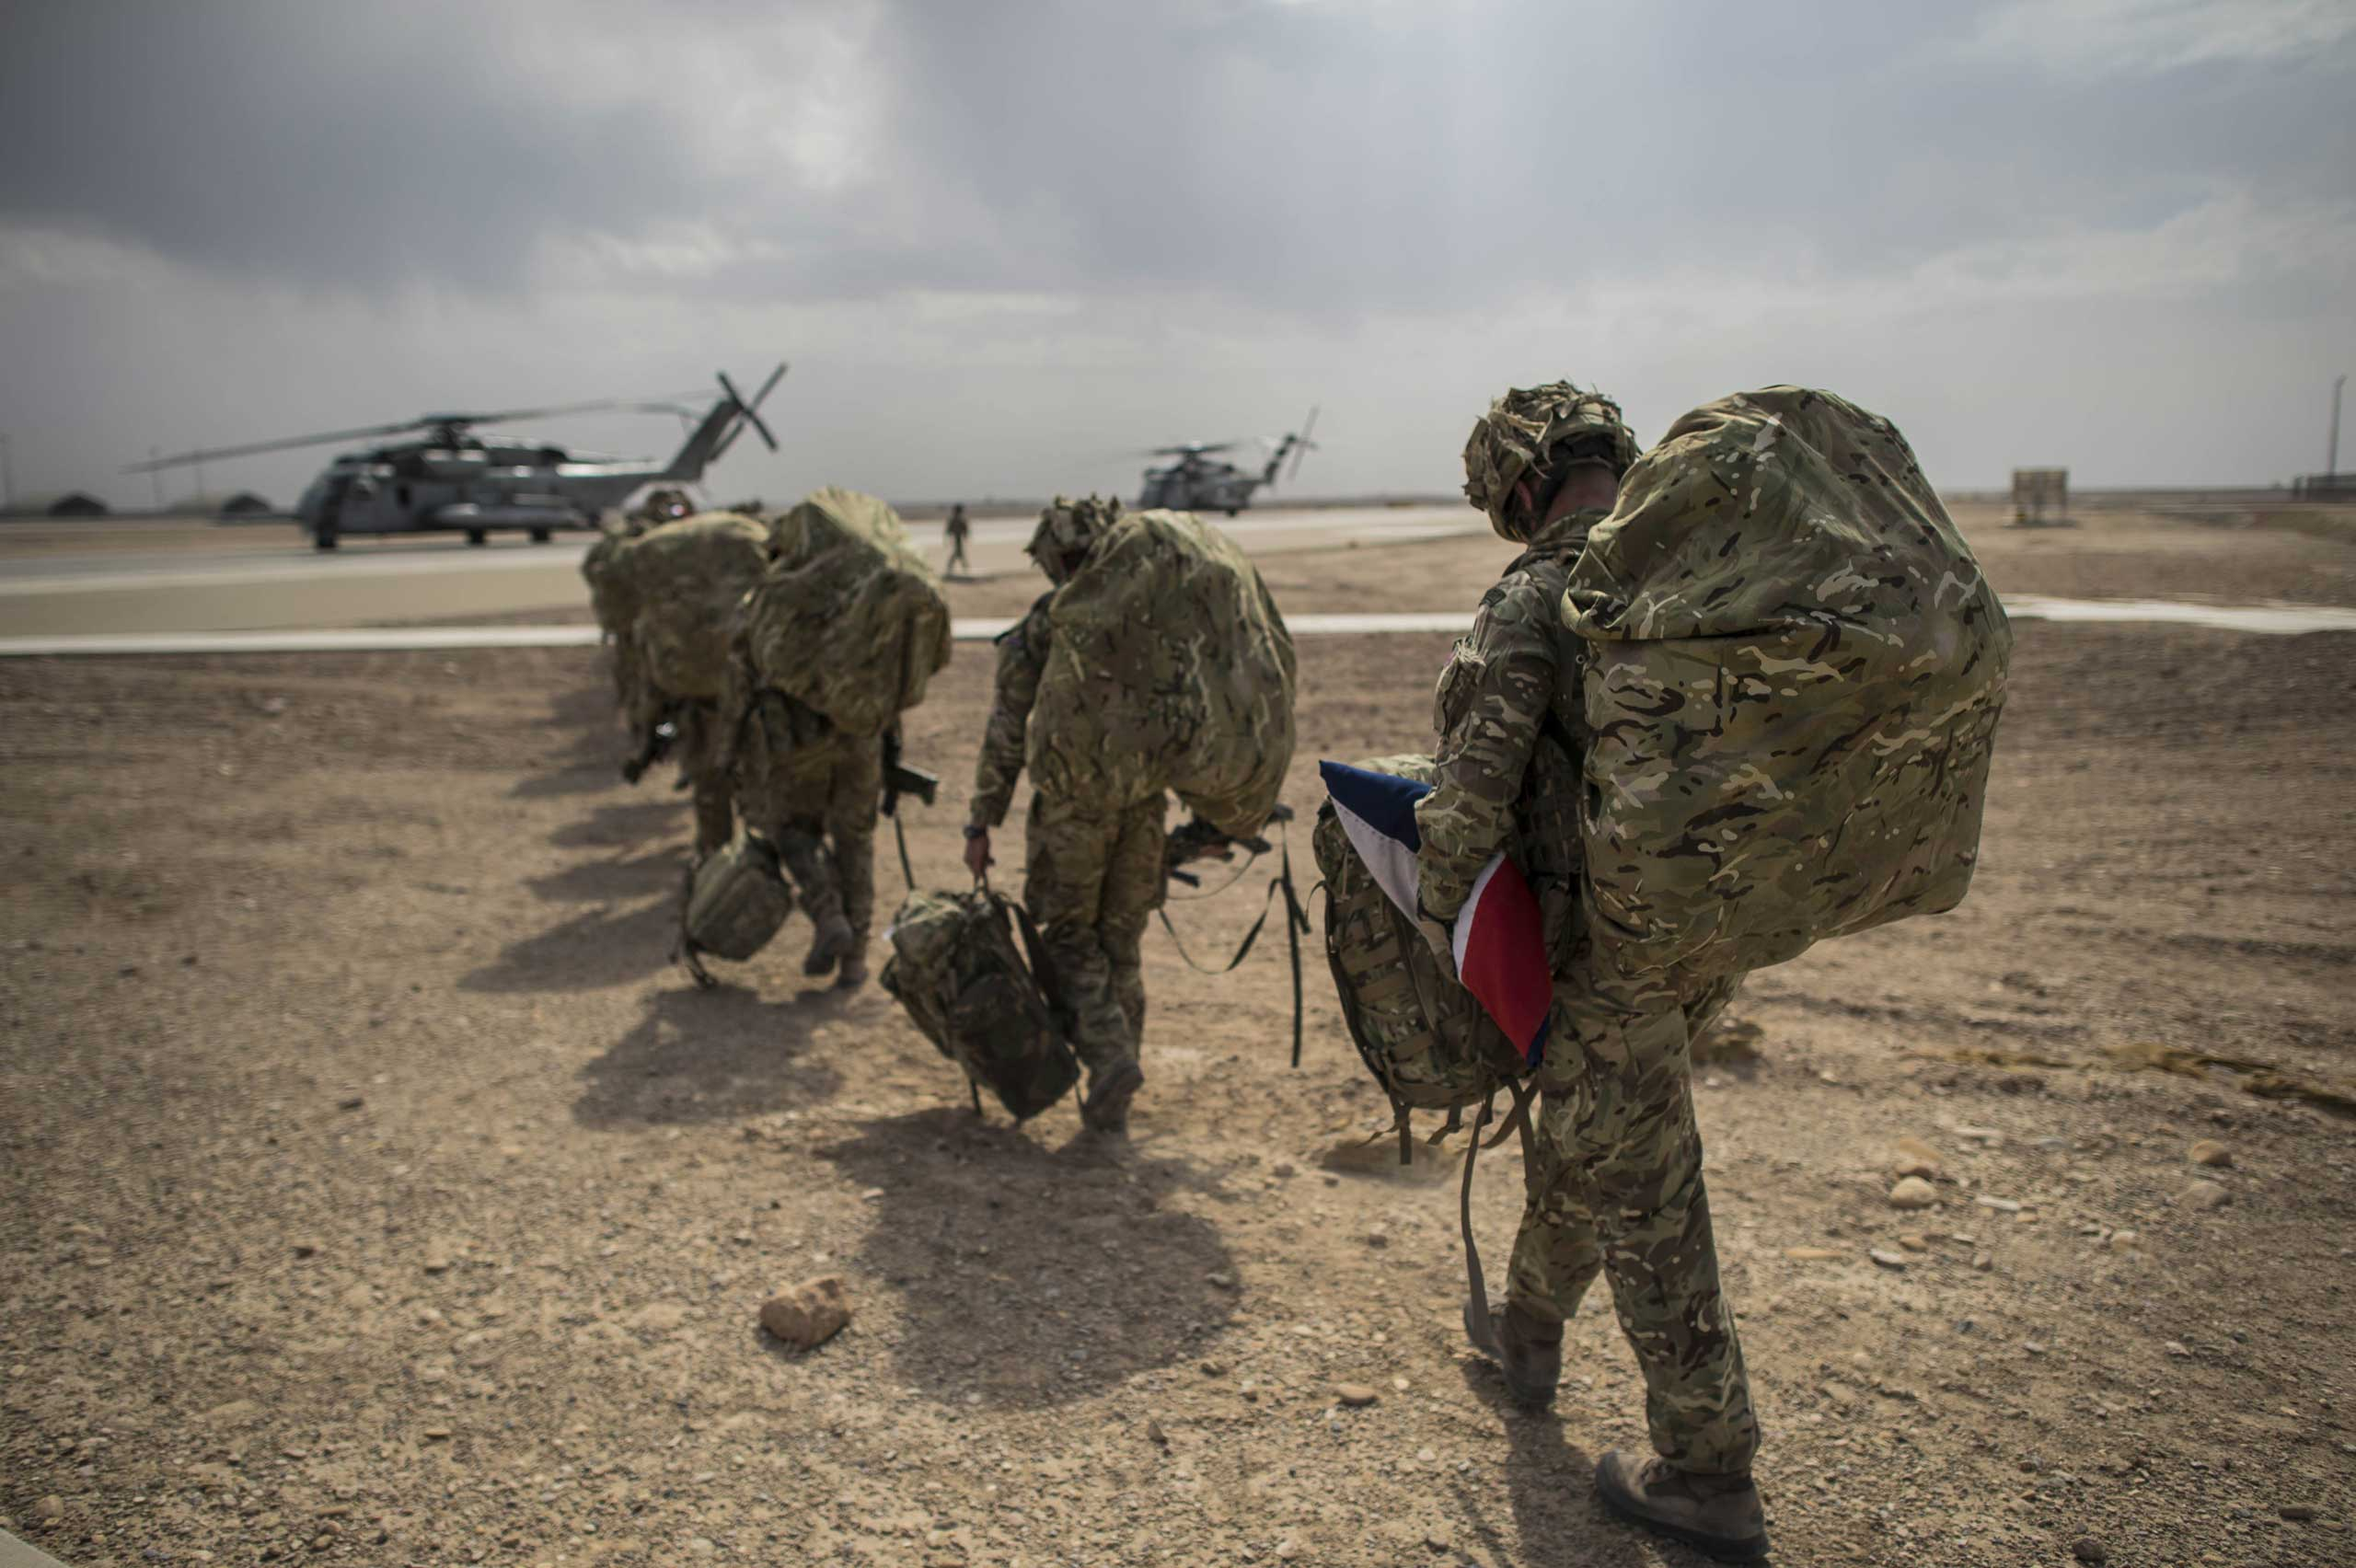 Oct. 27, 2014. Wing Commander Matt Radnall, Officer Commanding 7 Force Protection Wing, carries a carefully folded U.K. flag under his arm as he walks out towards helicopter to go back home to the U.K. He is one of the last British boots to leave Camp Bastion in Helmand Province, Afghanistan.